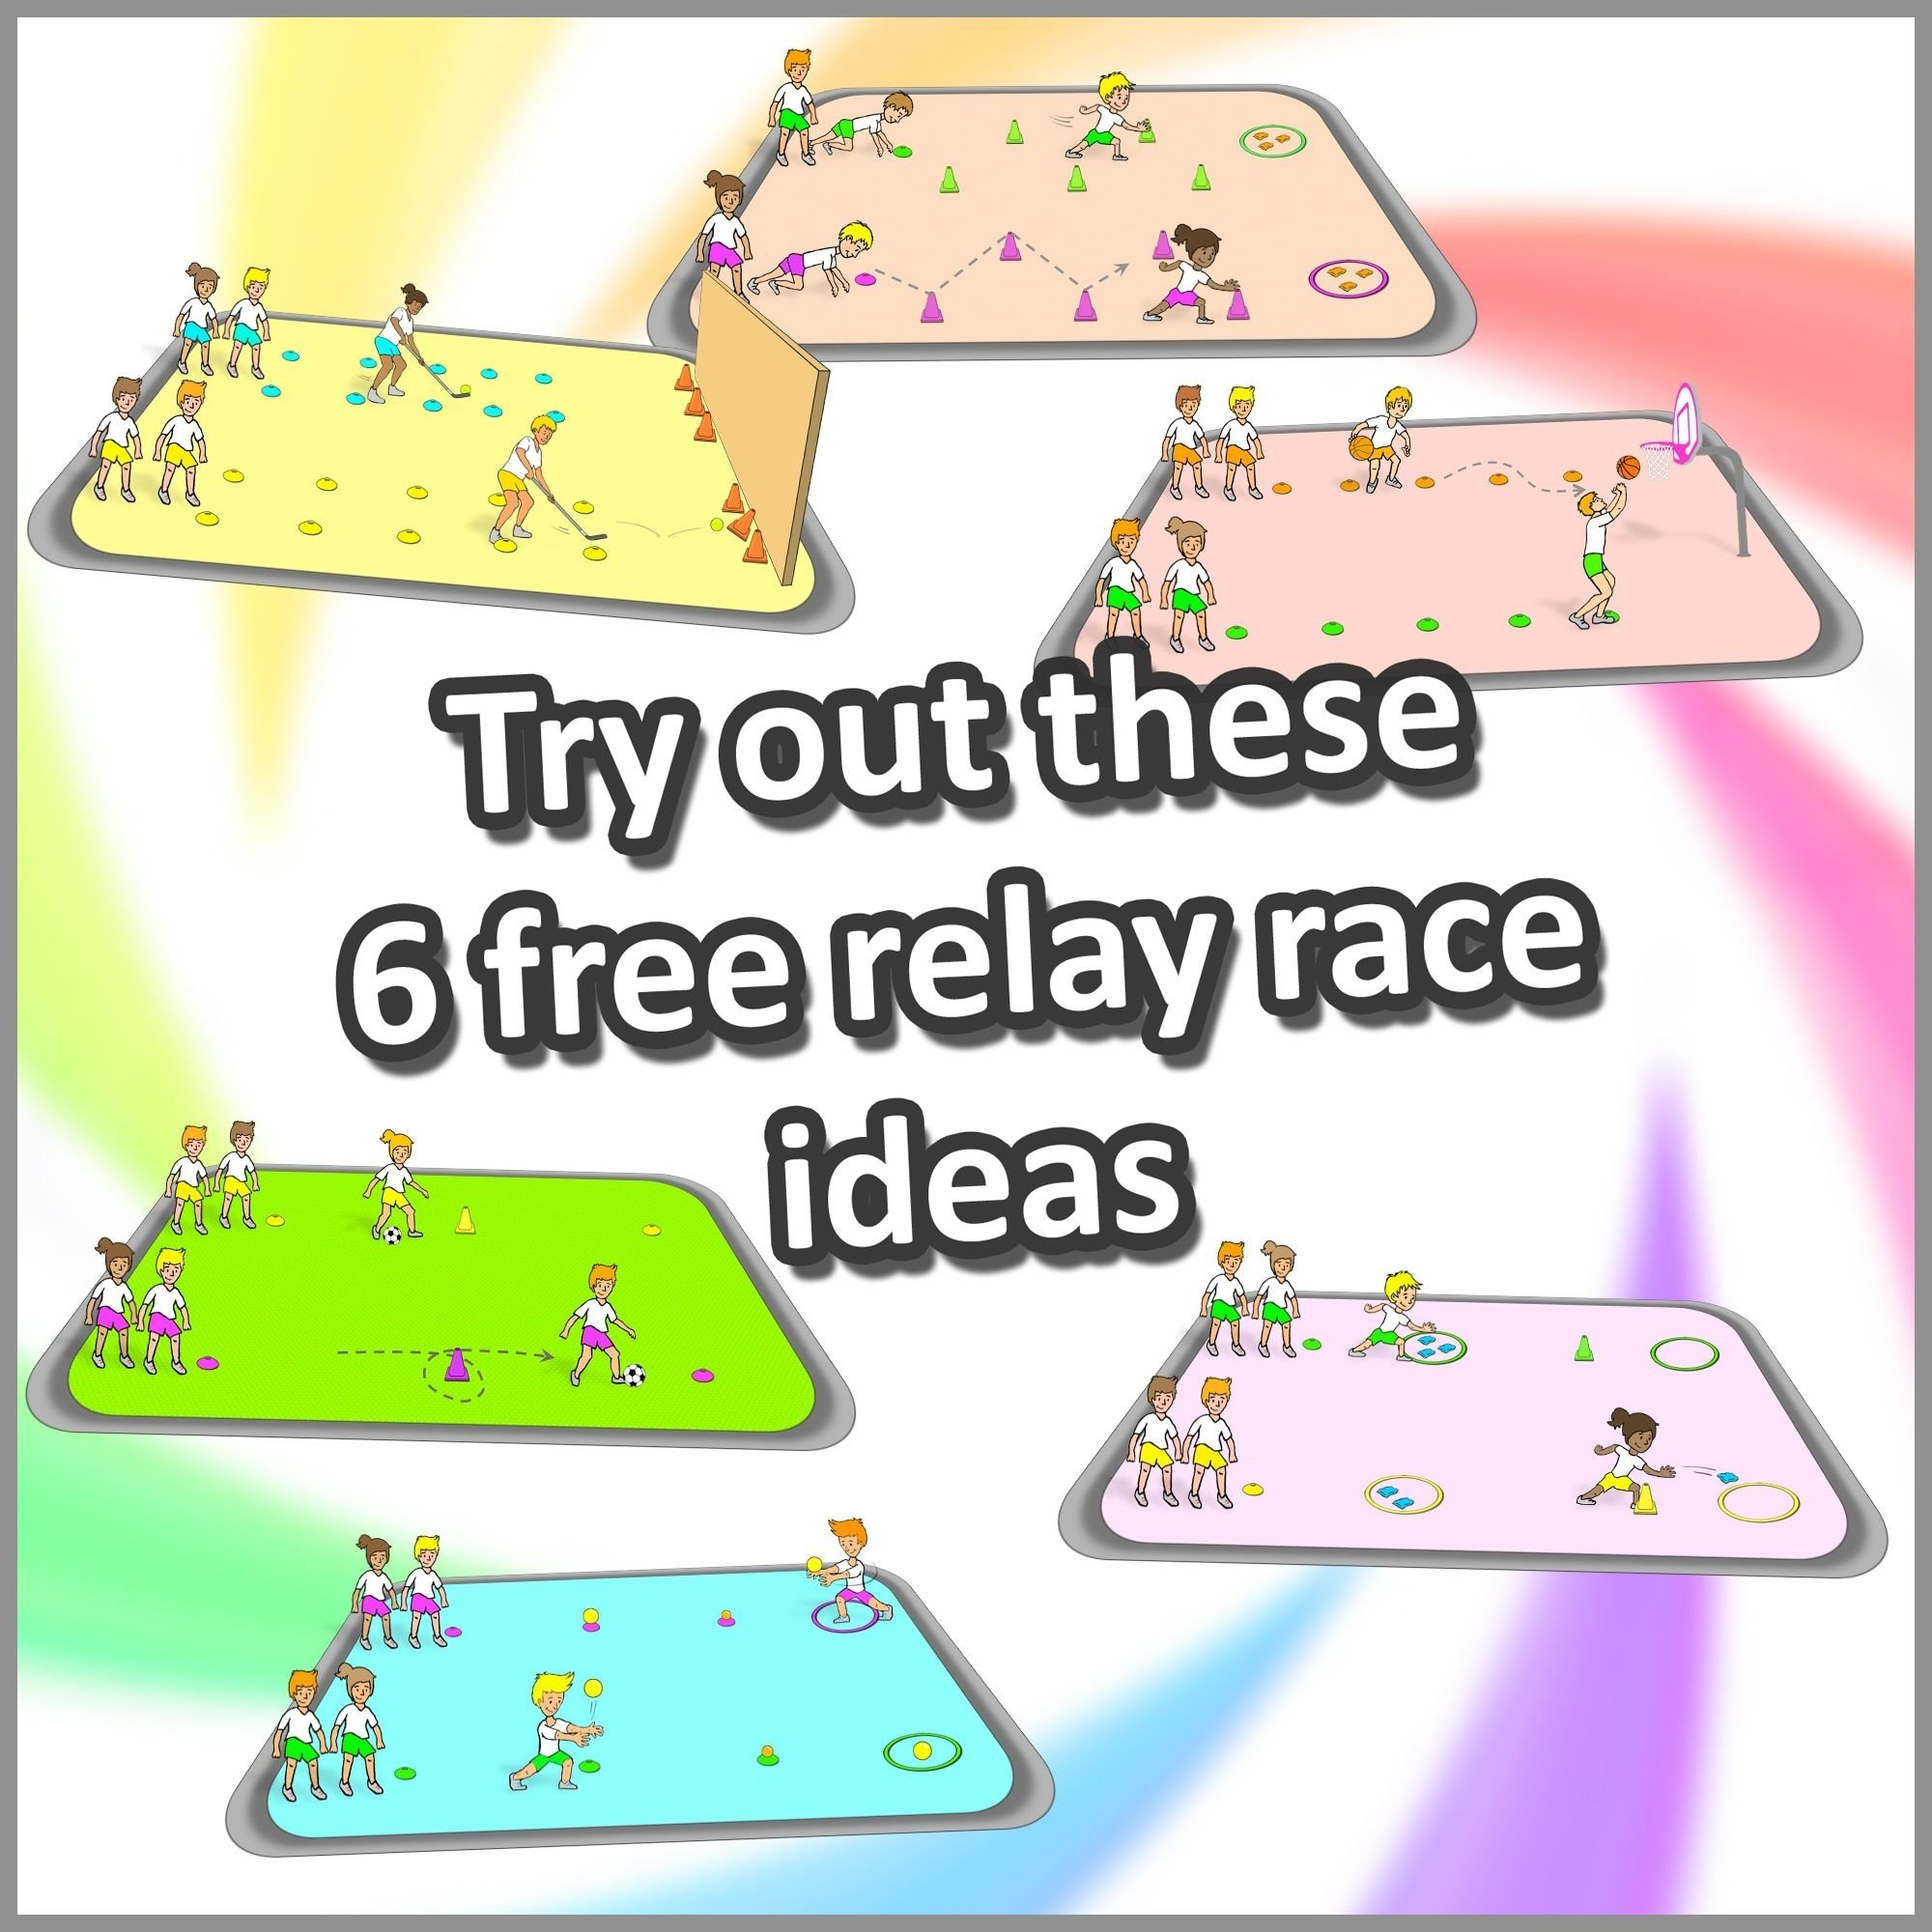 rapid relay races': 6 competitive, challenging relay race ideas | pe